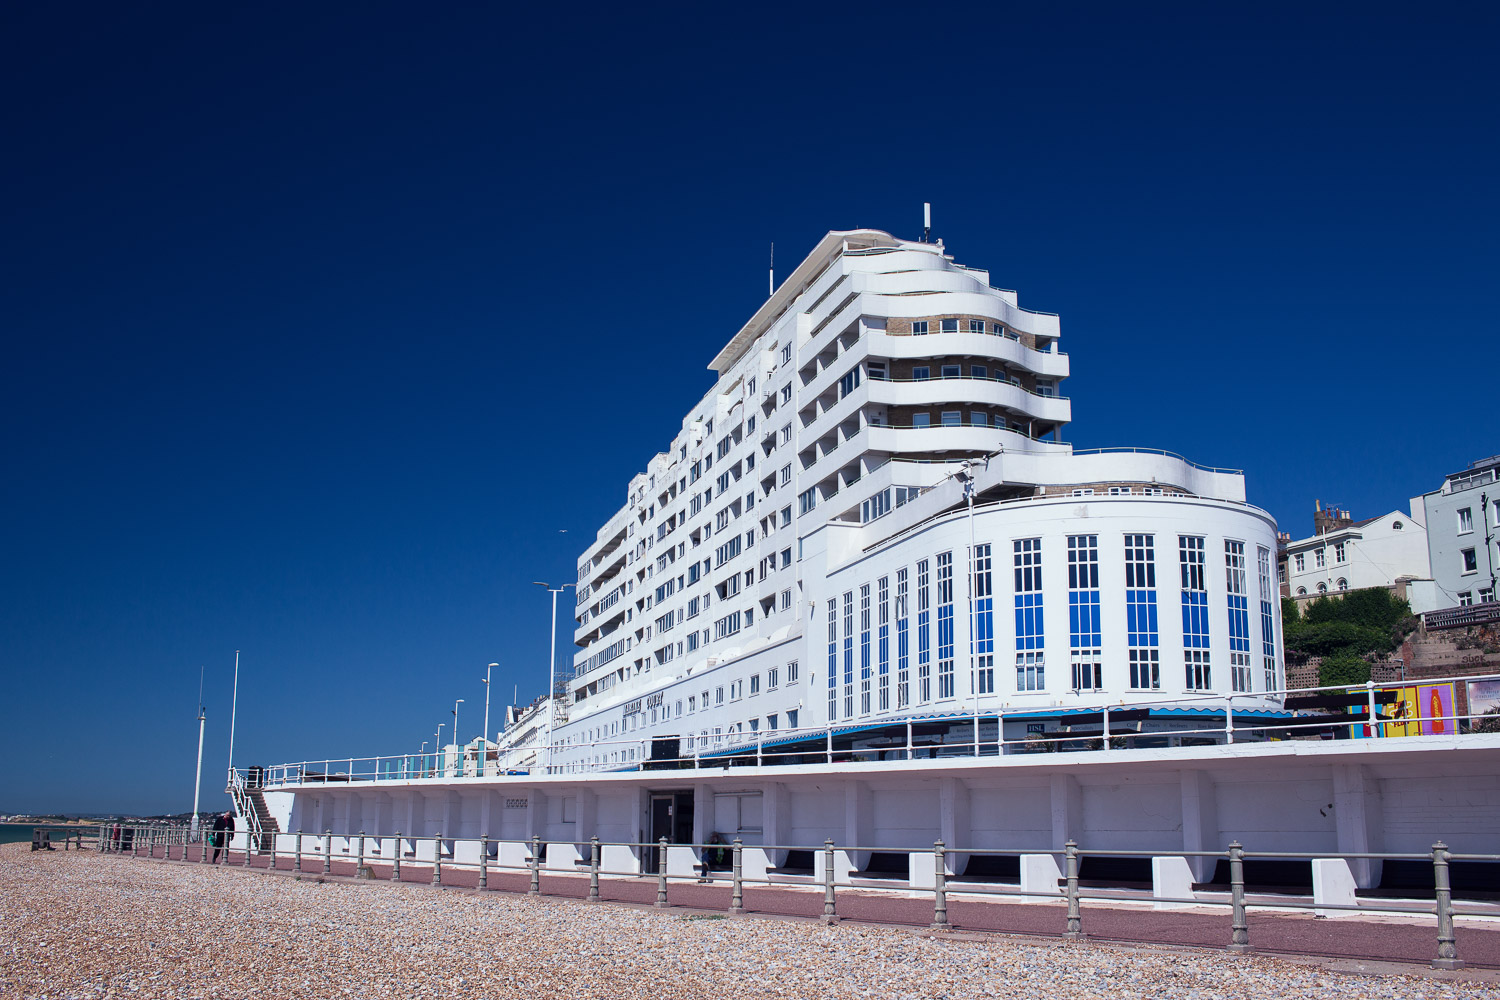 Gleaming white art deco curves and nautical lines of the Marine Court building (built in 1938) were designed to resemble the newly launched liner Queen Mary